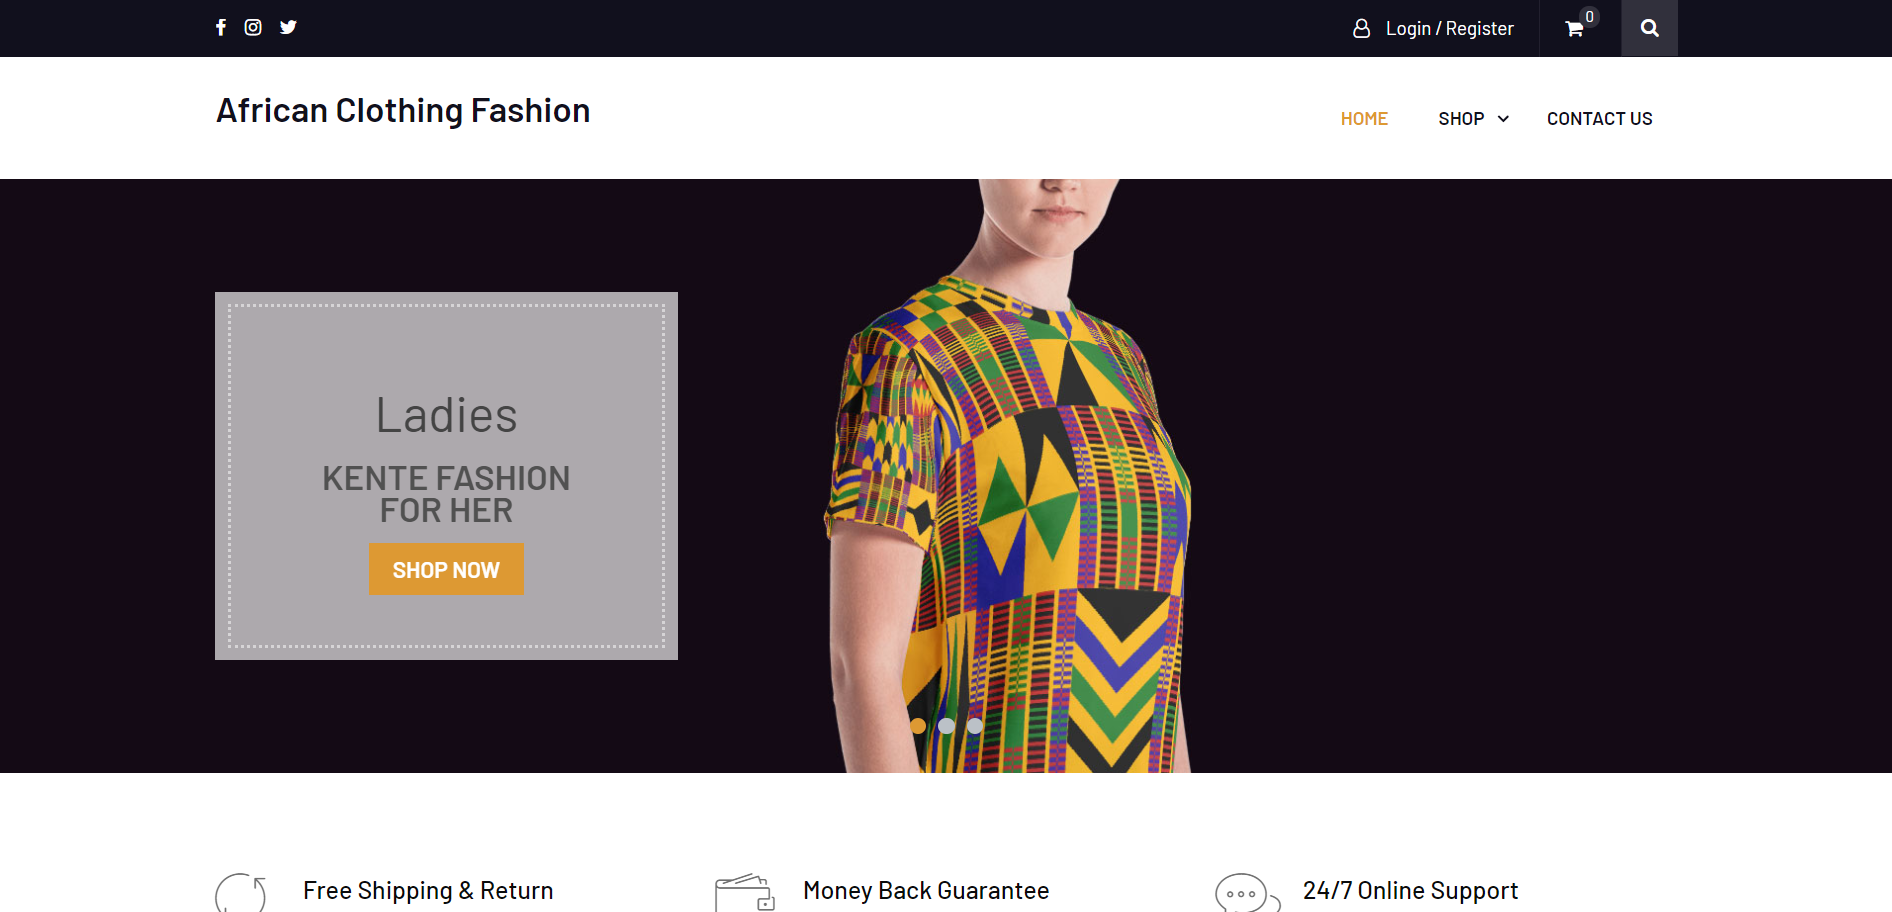 African Clothing Fashion